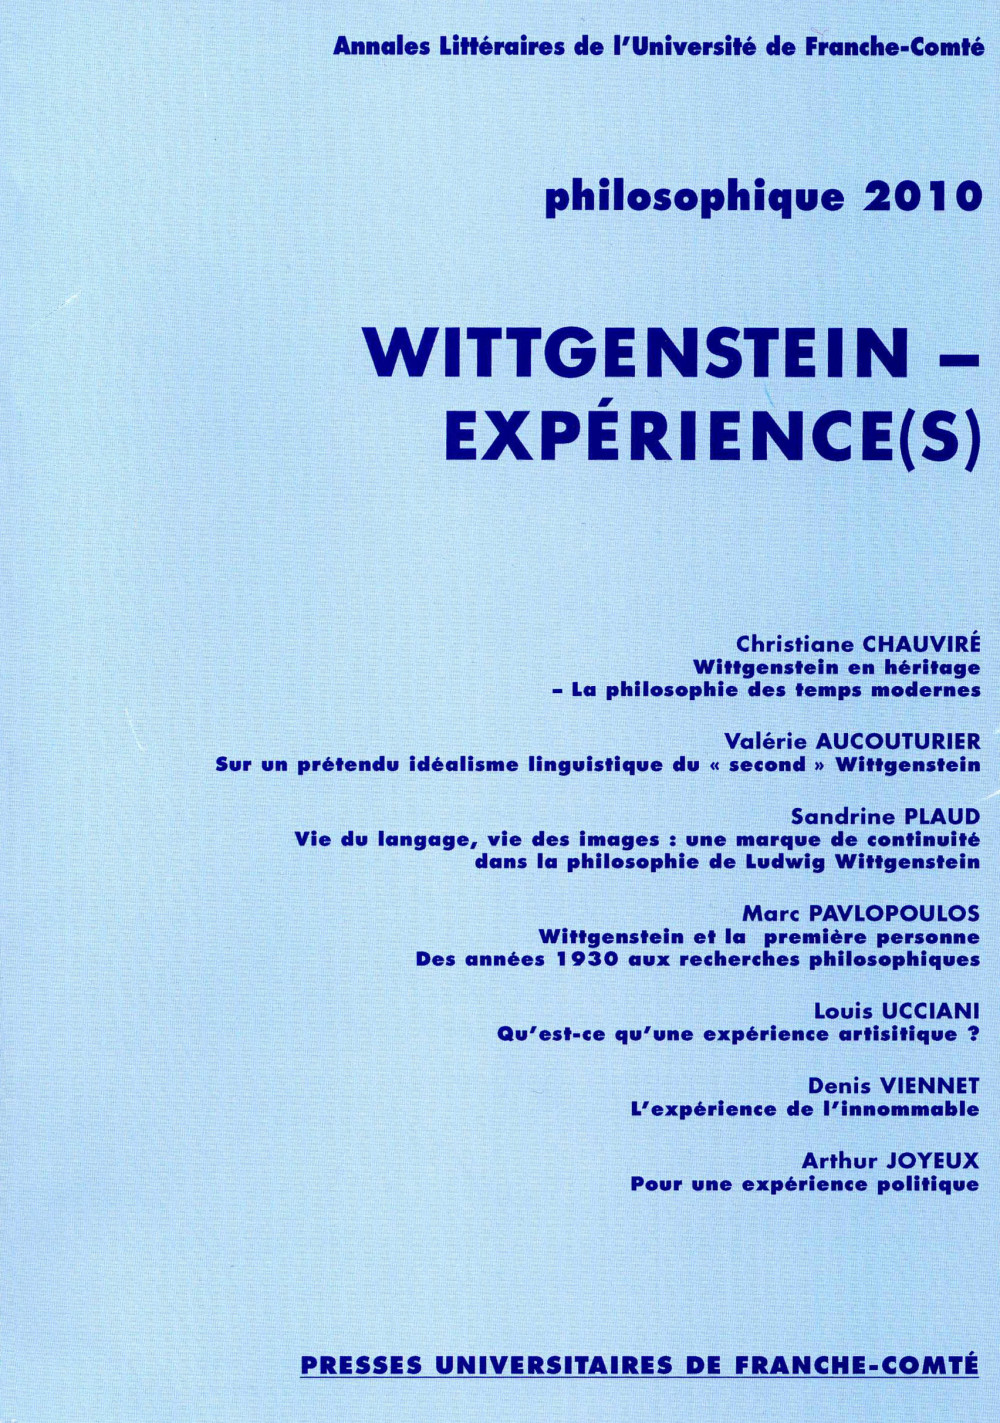 Philosophique 2010 : Wittgenstein